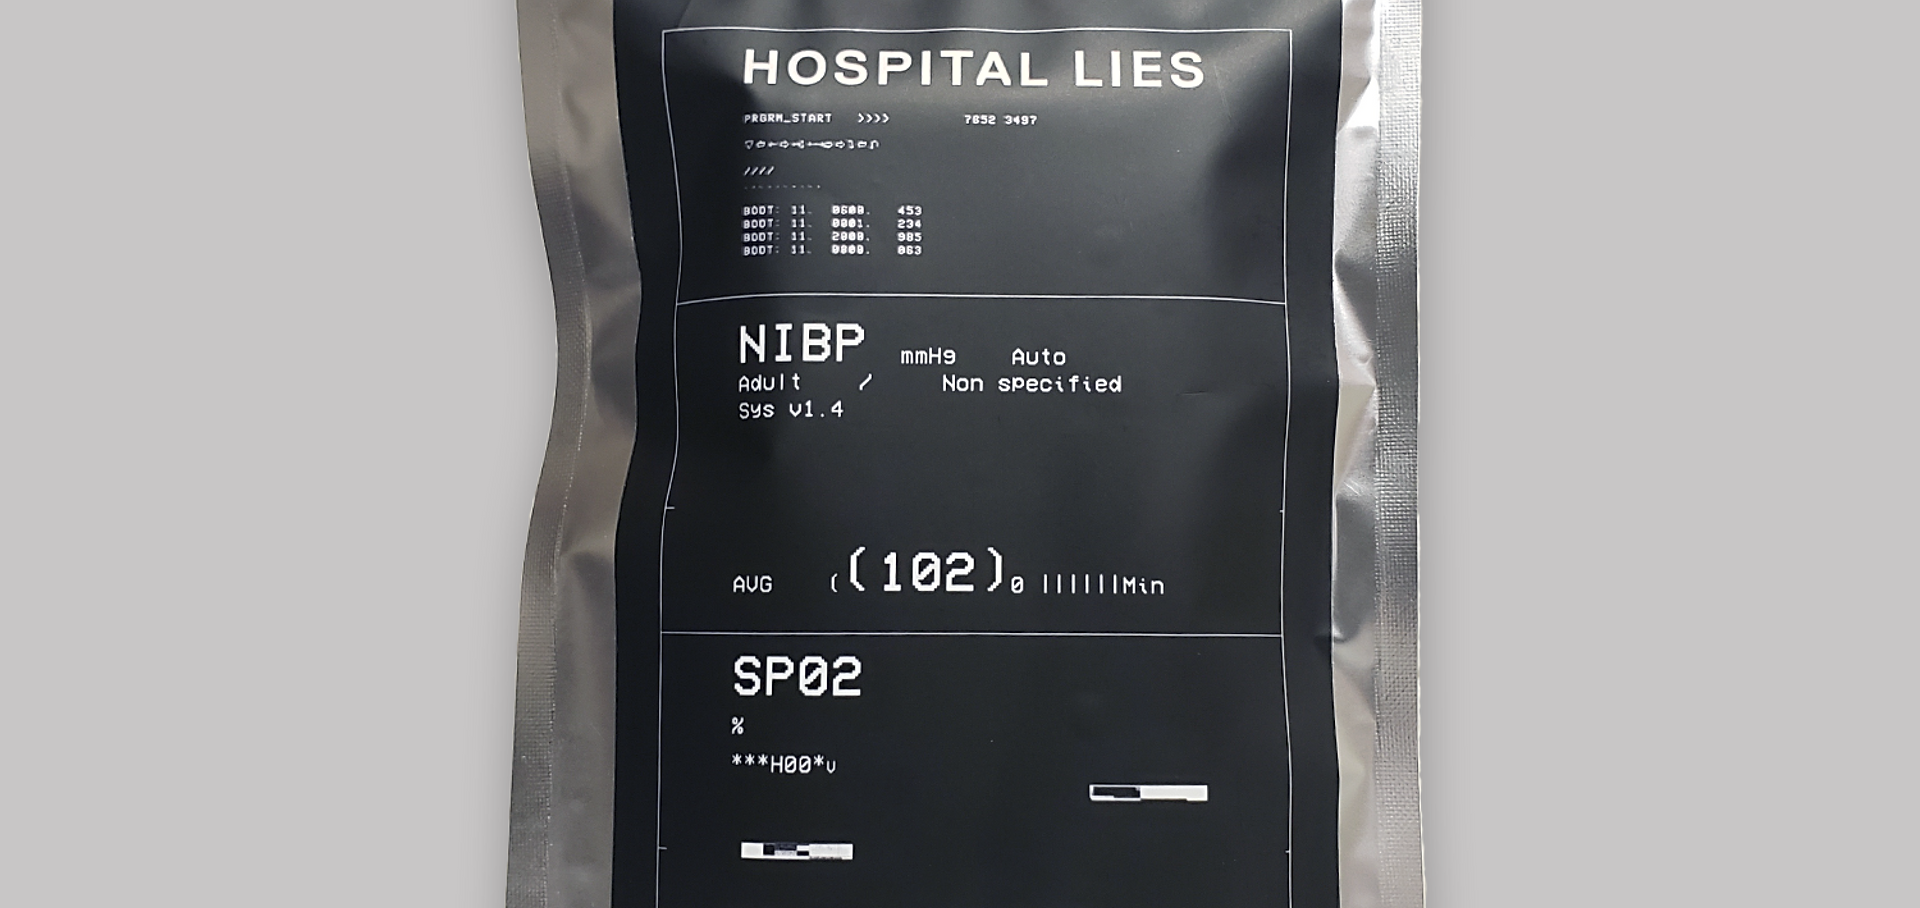 1_Gallery images_Square_Hospital Lies_Bi